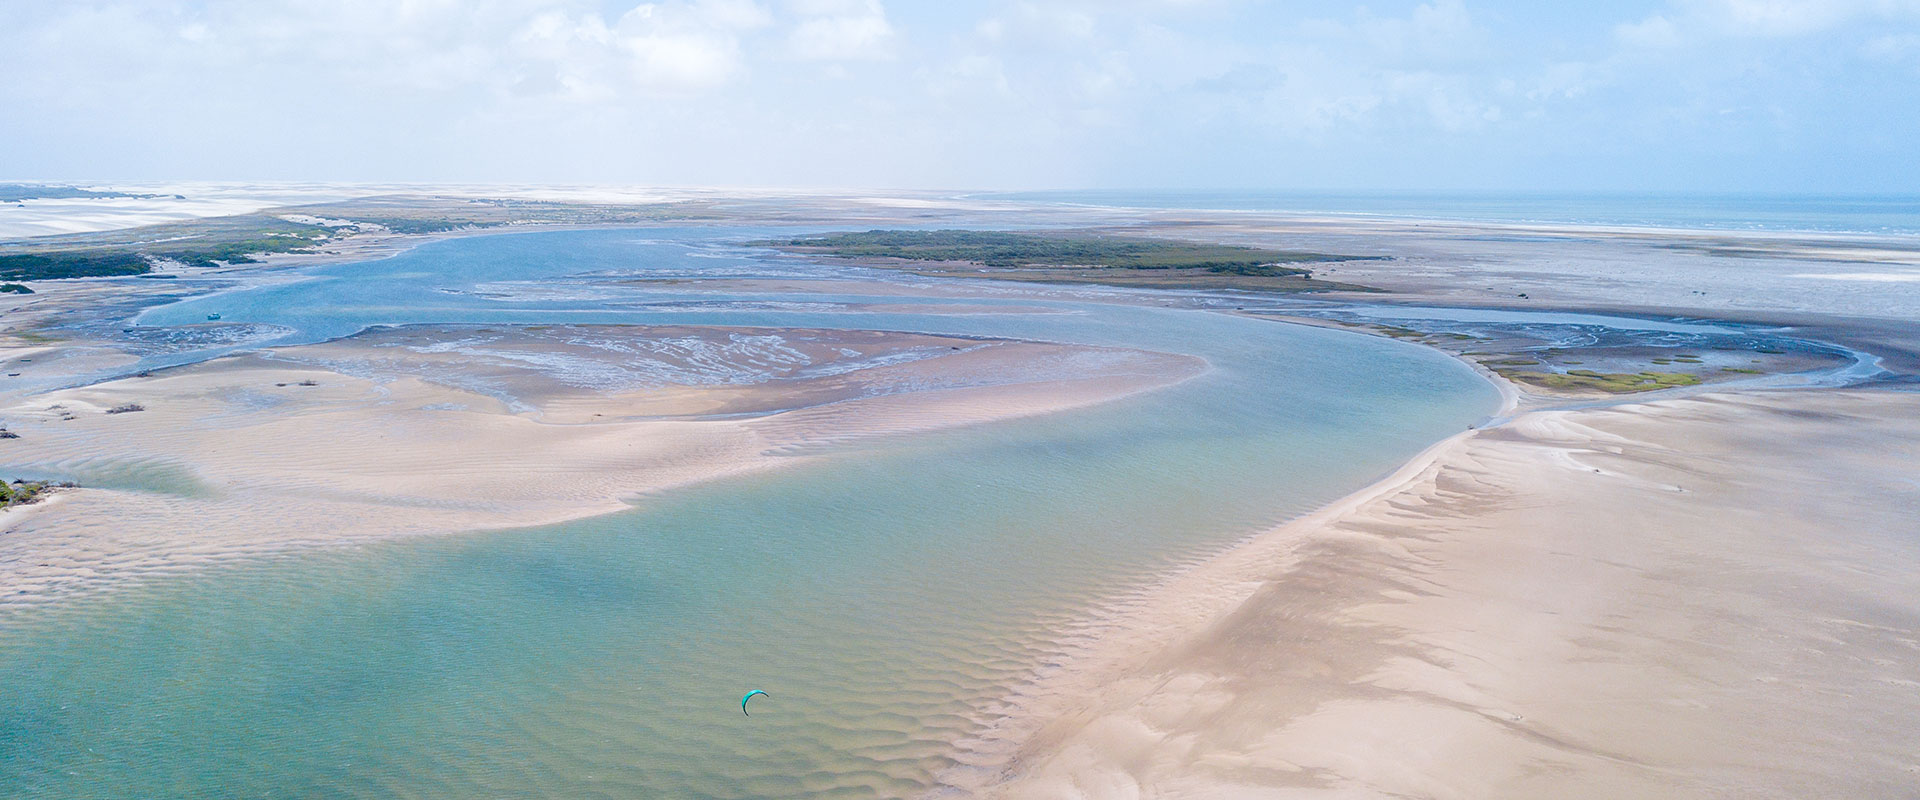 A view of the water on the sand dunes in Atins